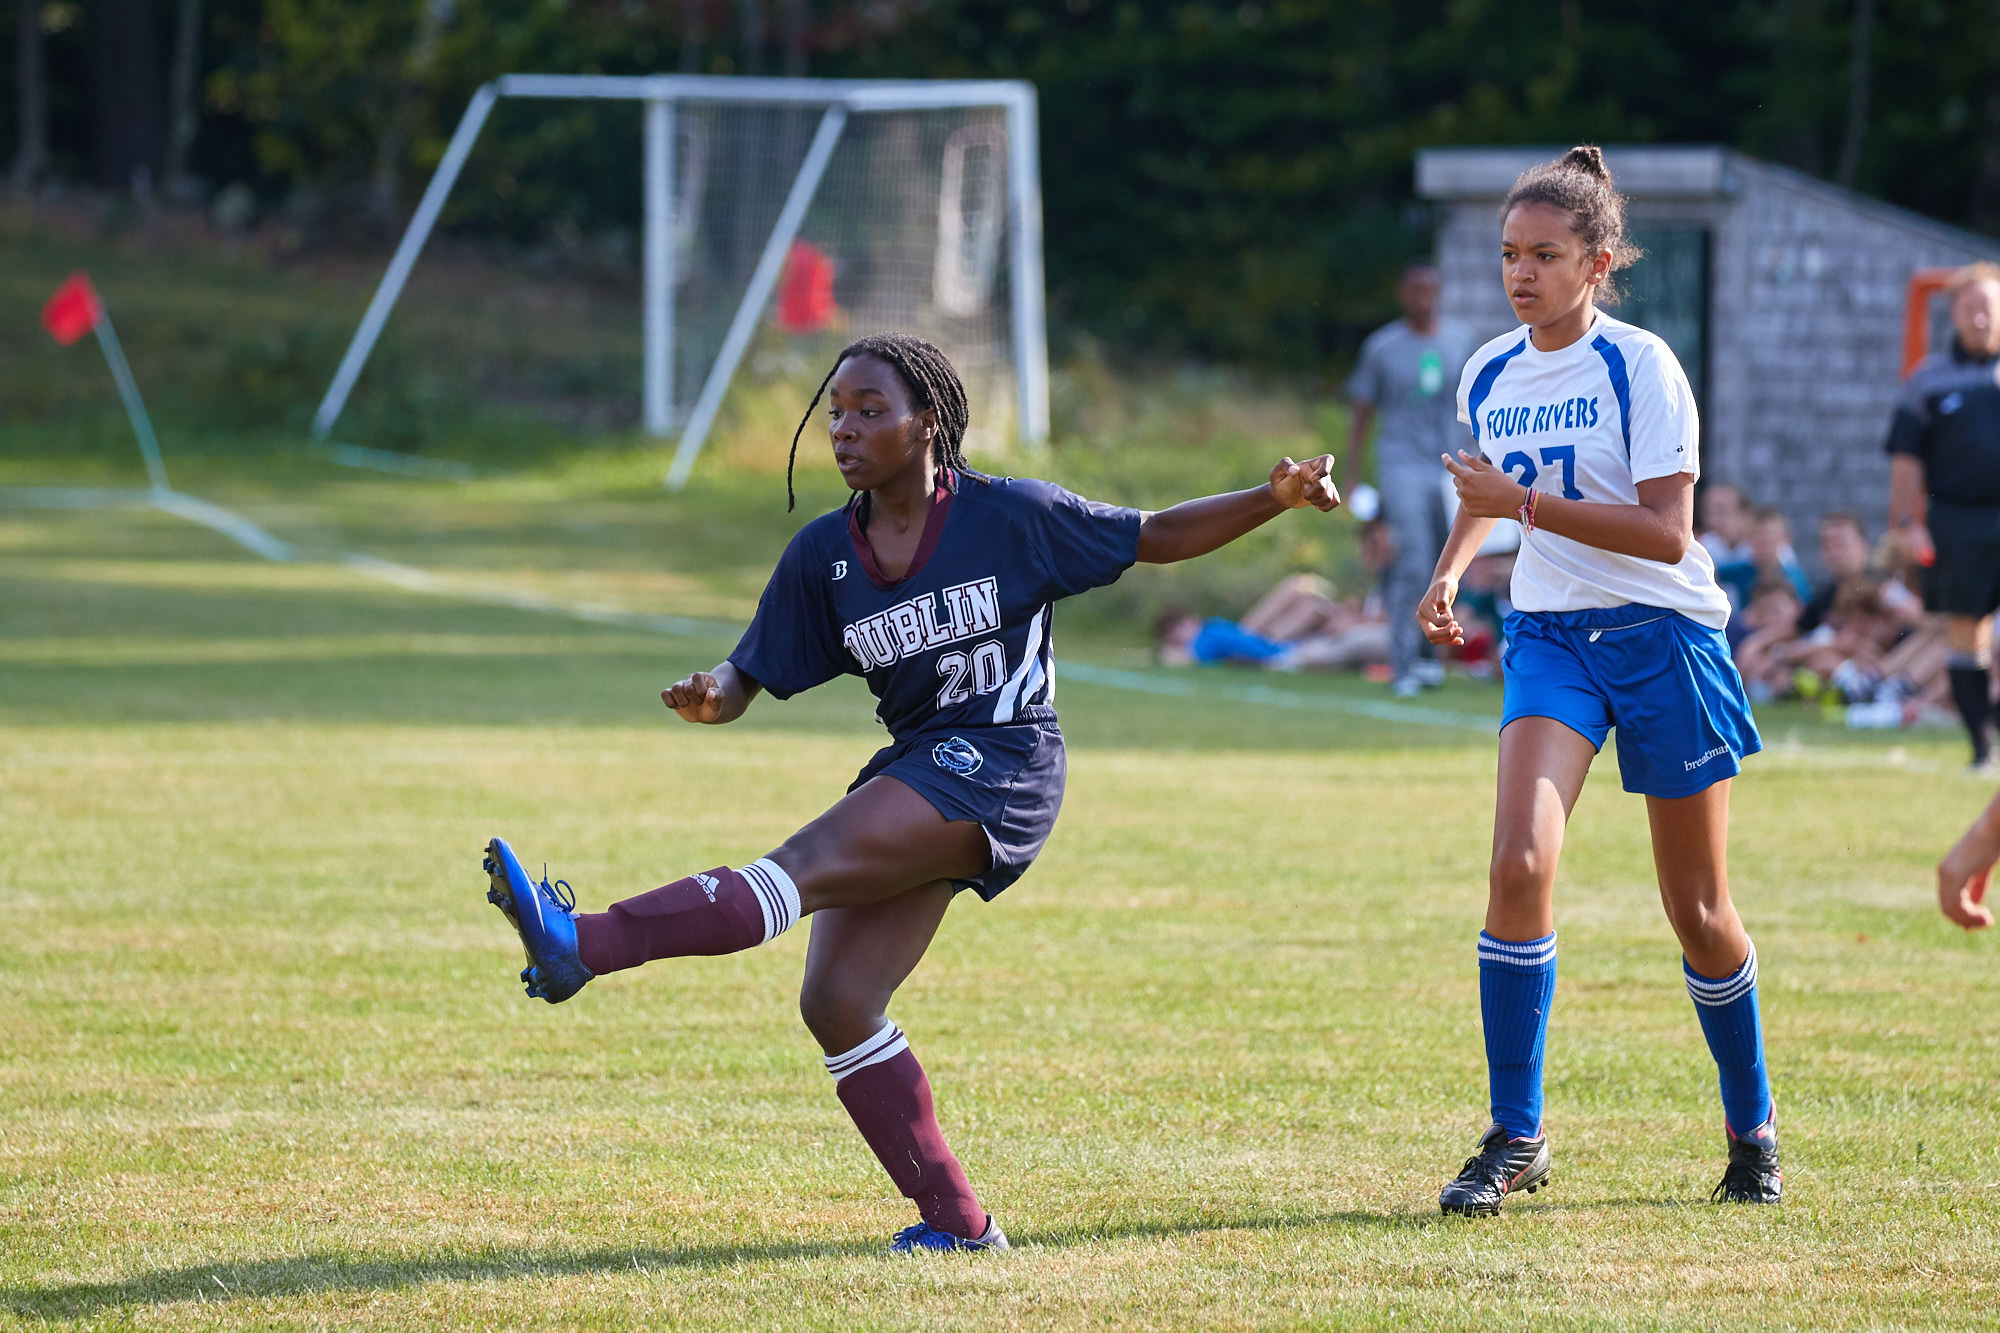 Girls Varsity Soccer vs. Four Rivers Charter Public School - September 23, 2016 - 41330- 000124.jpg